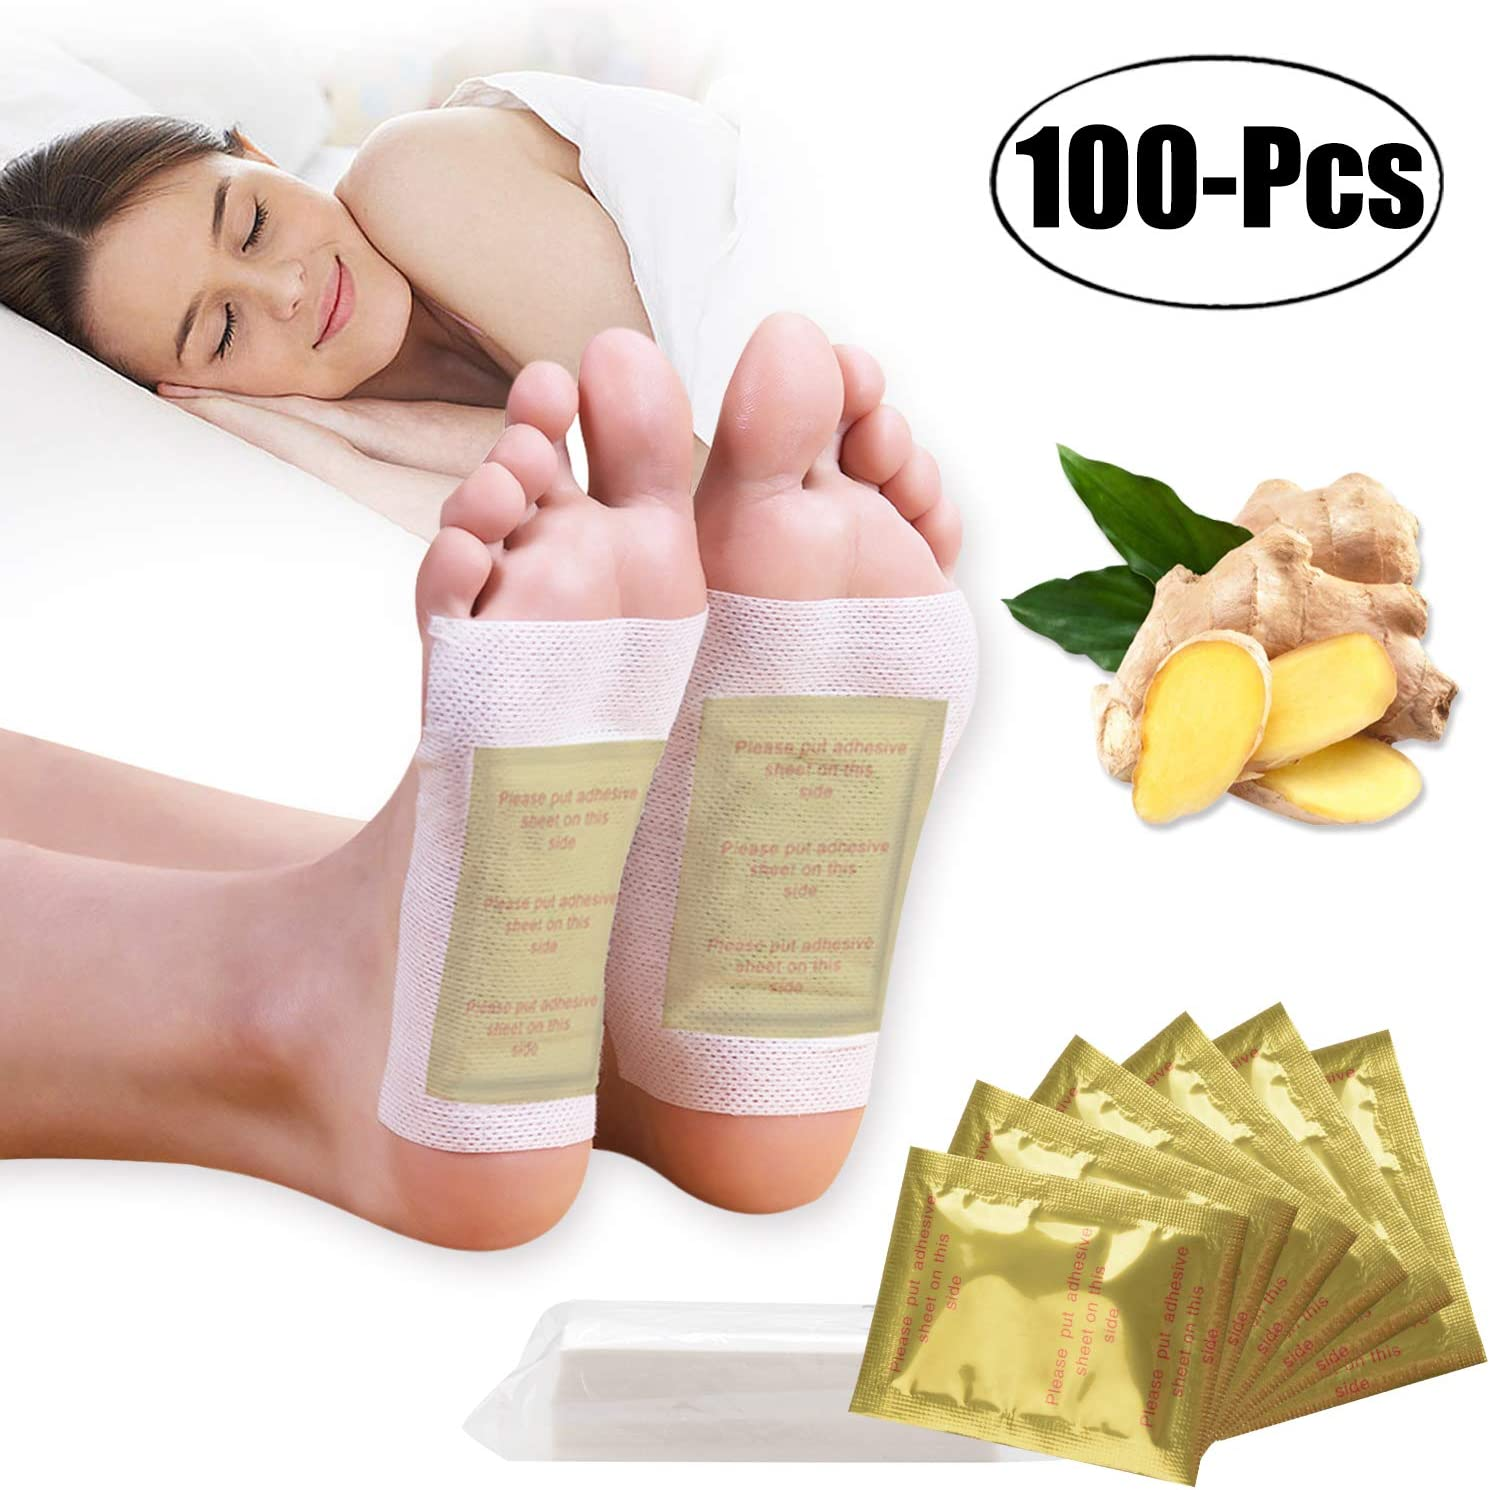 FunPa Foot Pads - (100Pads) Ginger Foot Patch for Better Sleep and Anti-Stress Relief, Pure Natural Bamboo Vinegar and Ginger Premium Ingredients Combination for Foot and Body Cleansing. (100pcs)